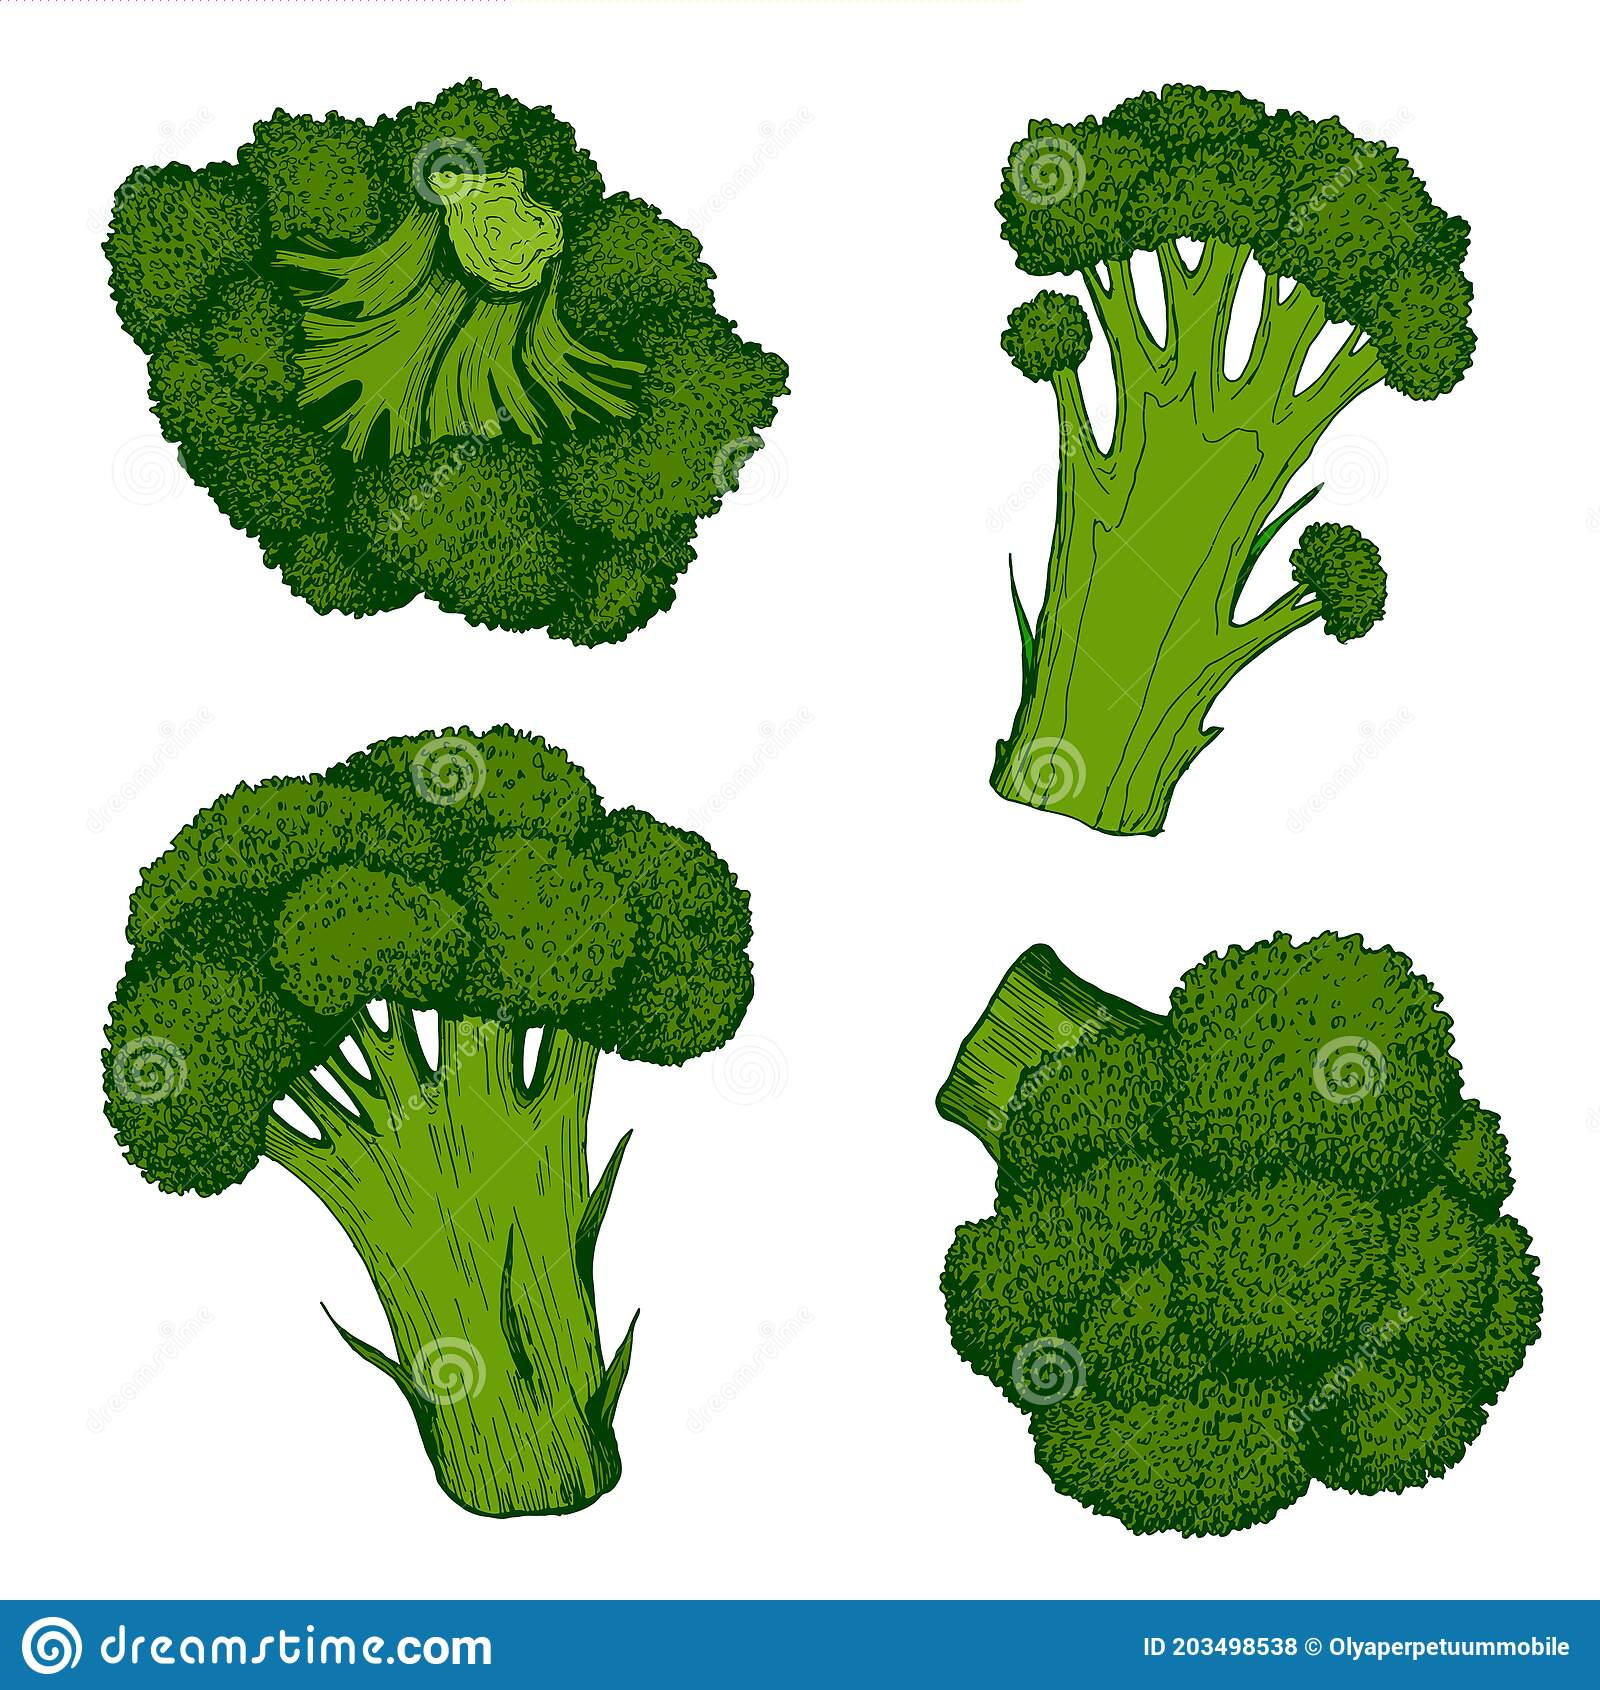 Fresh Juicy Broccoli Colorful Green Vegetable Collection Organic Vegetarian Product Isolated On White Stock Vector Illustration Of Botany Closeup 203498538